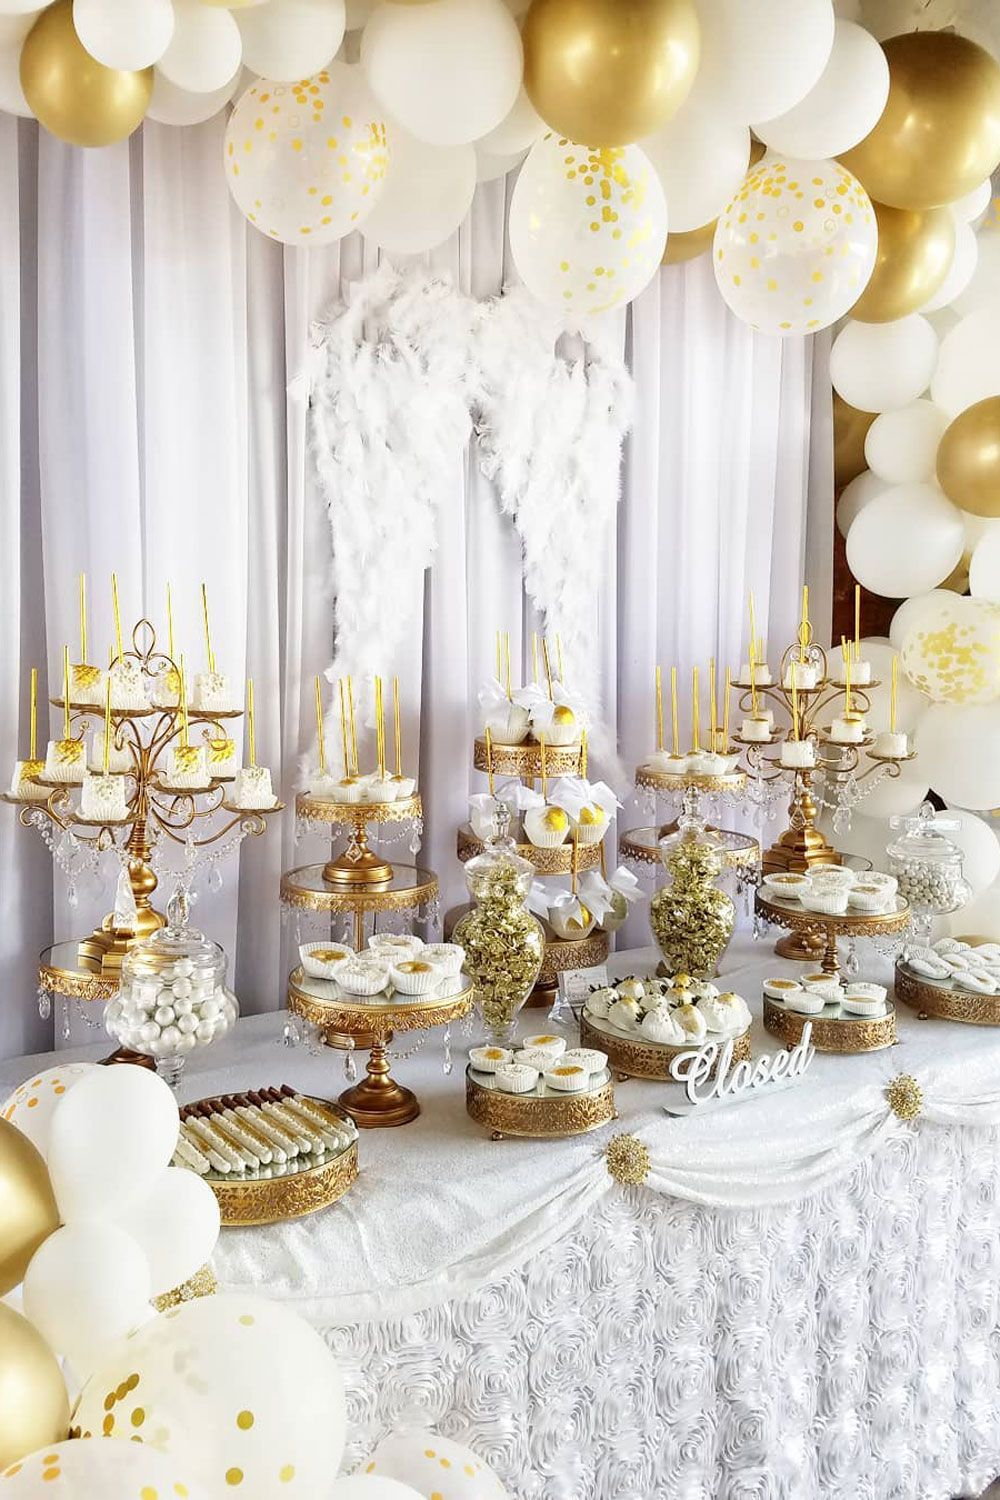 Baptism Candy Table By Blossomcreations10 Featuring All Gold Amalfi Decor Cake Stands Shop Over Baptism Dessert Table Baptism Desserts White Dessert Tables